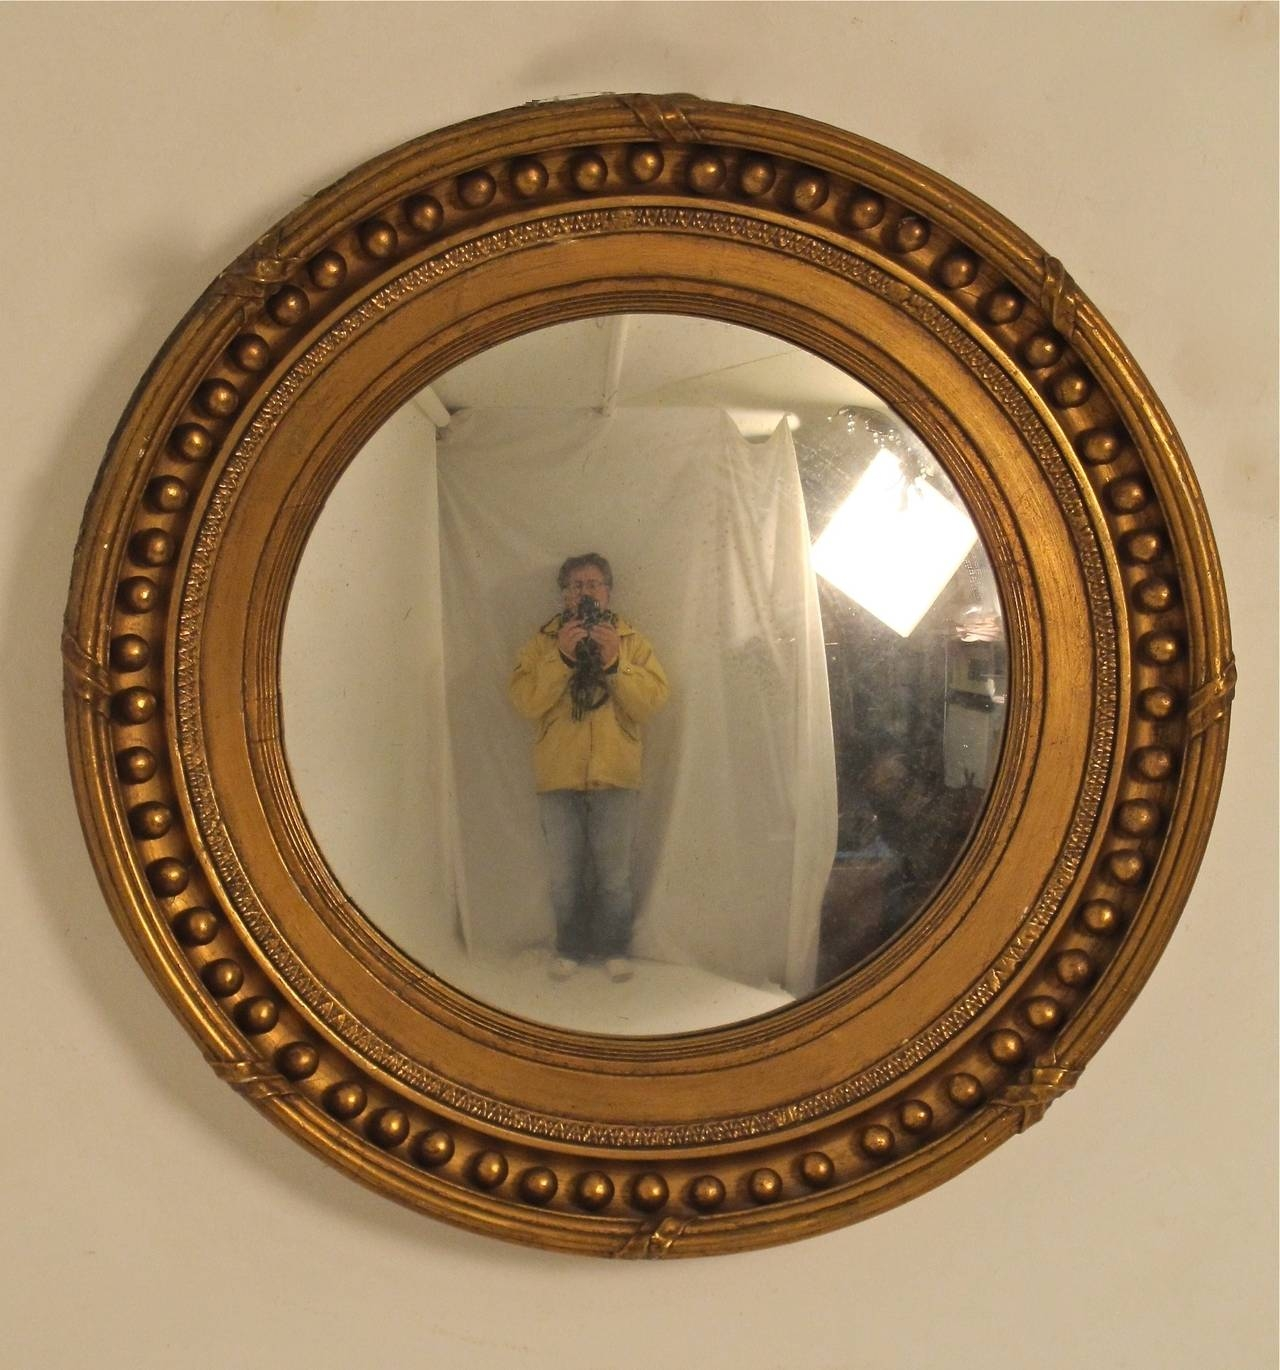 19th Century Regency Style Convex Mirror At 1stdibs With Regard To Convex Mirror Decorative (Image 1 of 15)